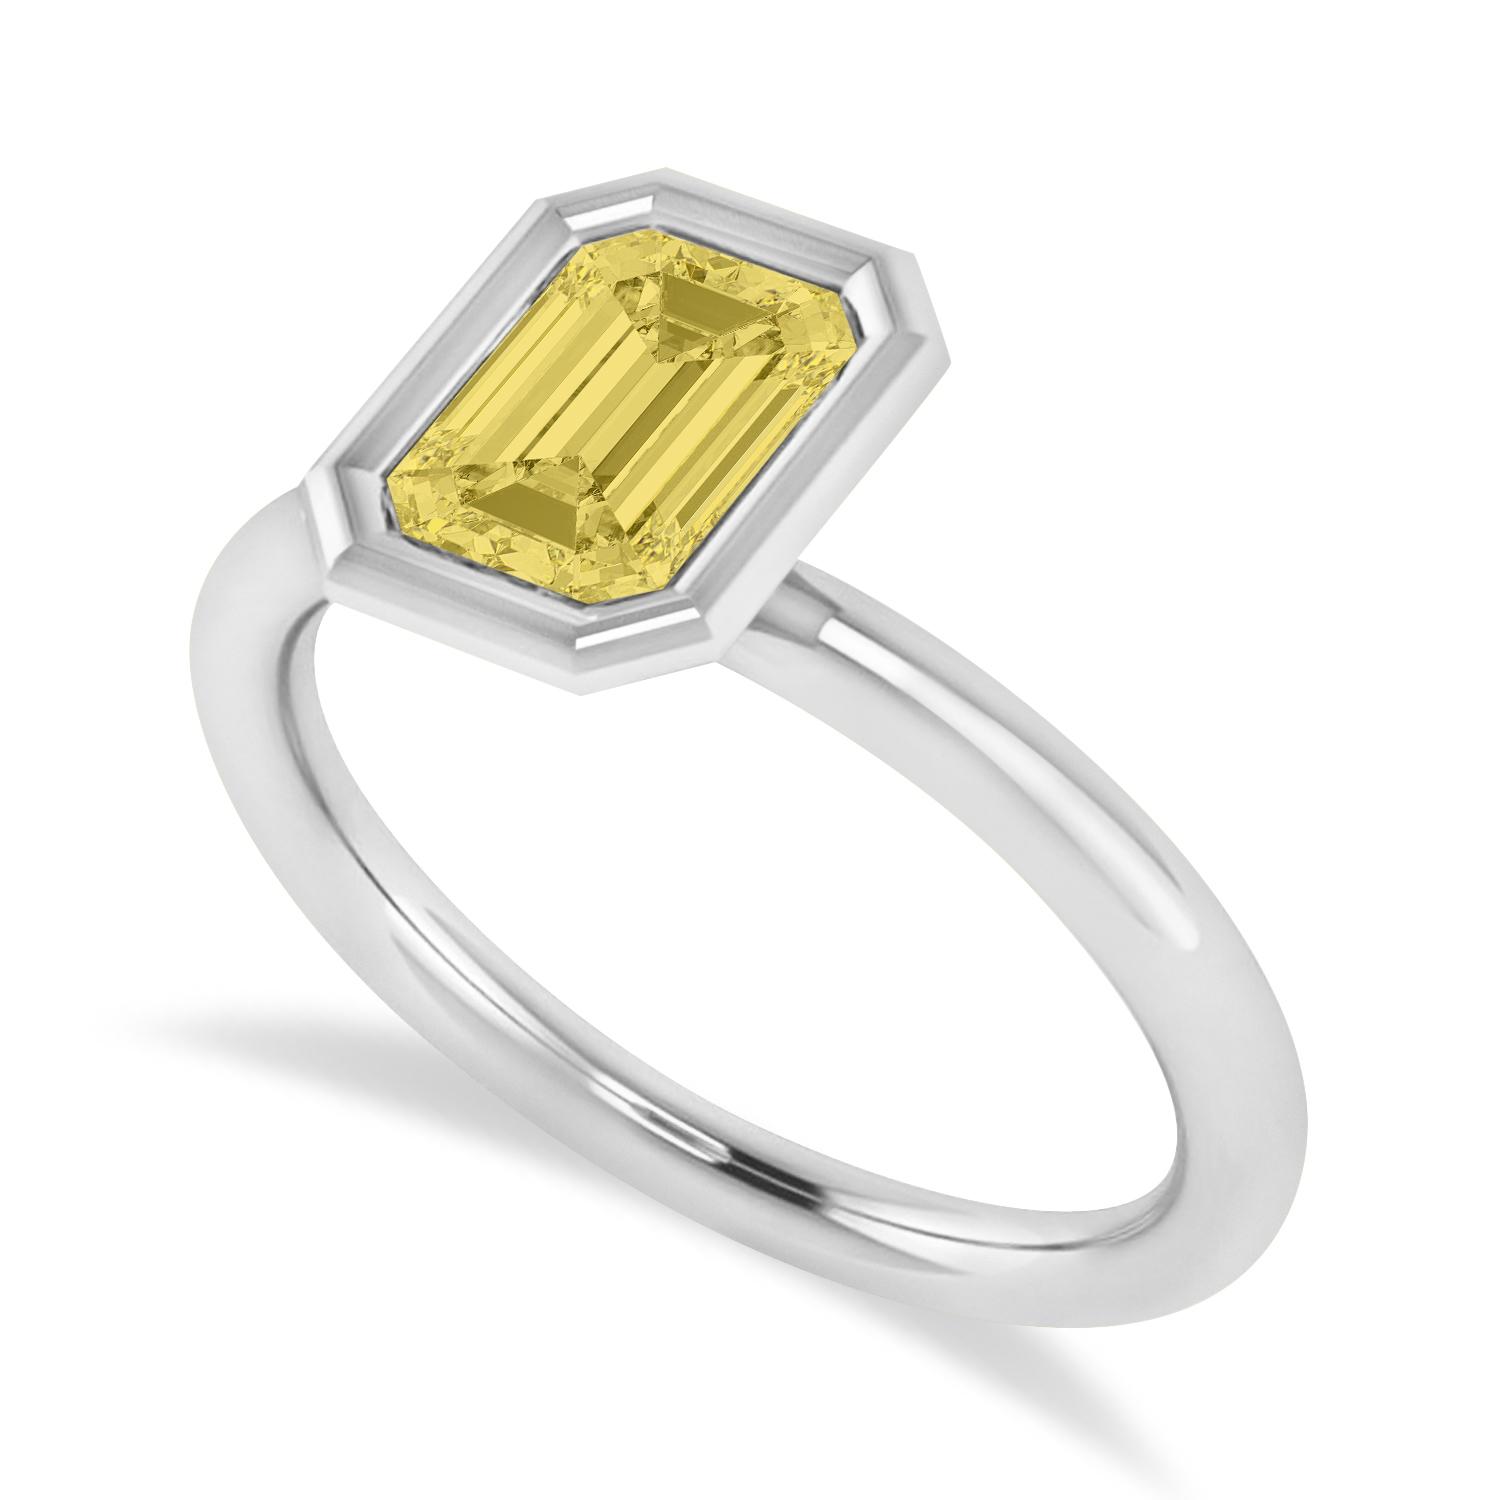 Emerald-Cut Bezel-Set Yellow Diamond Solitaire Ring 14k White Gold (1.00 ctw)